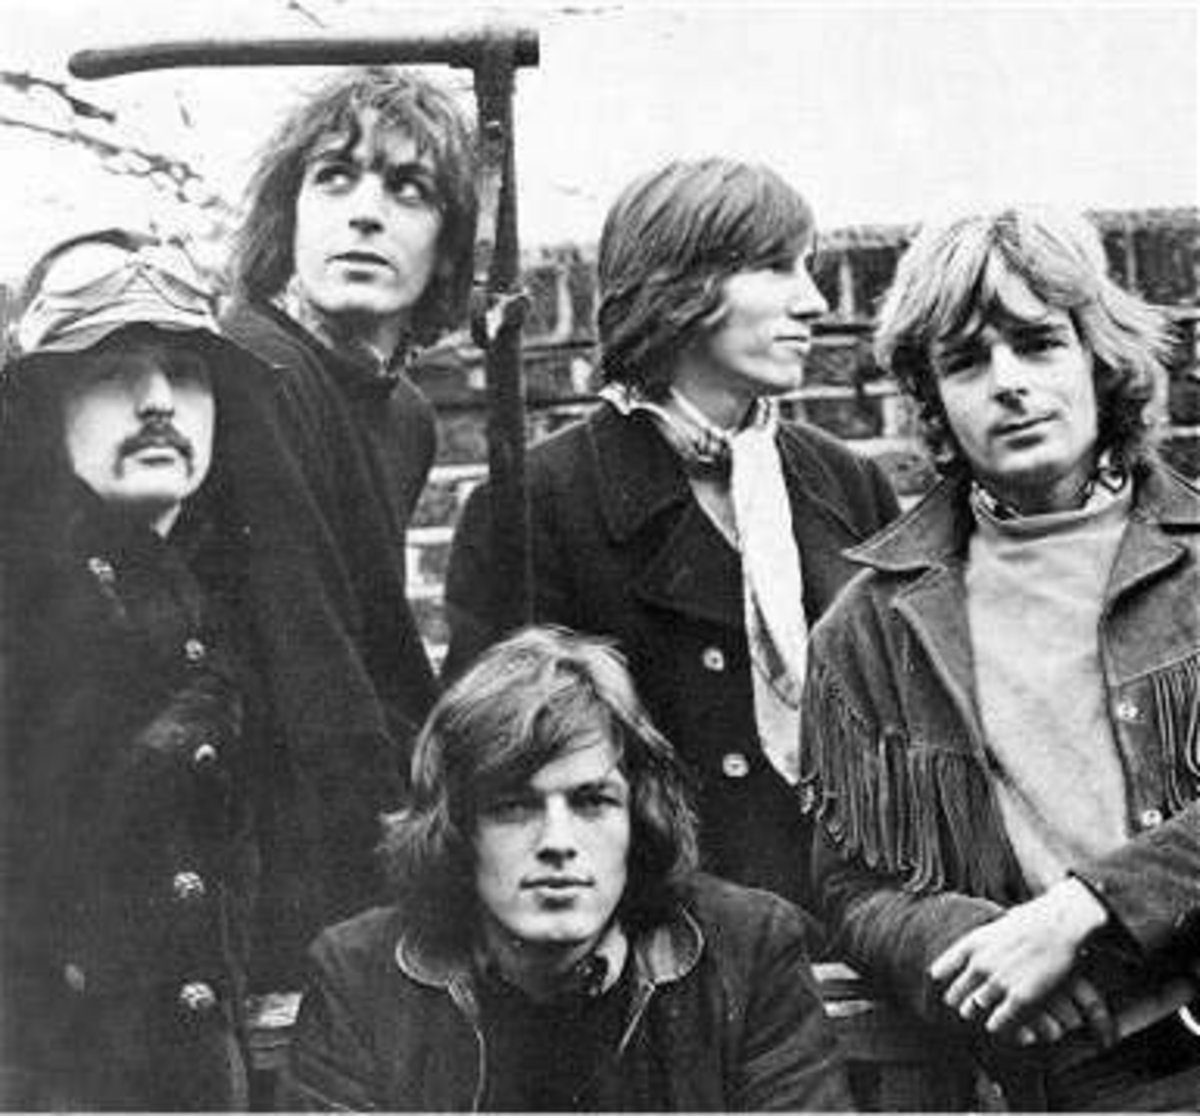 Photograph of all significant members of Pink Floyd. Nick Mason, Syd Barrett, Roger Waters, Richard Wright, and David Gilmour (seated)